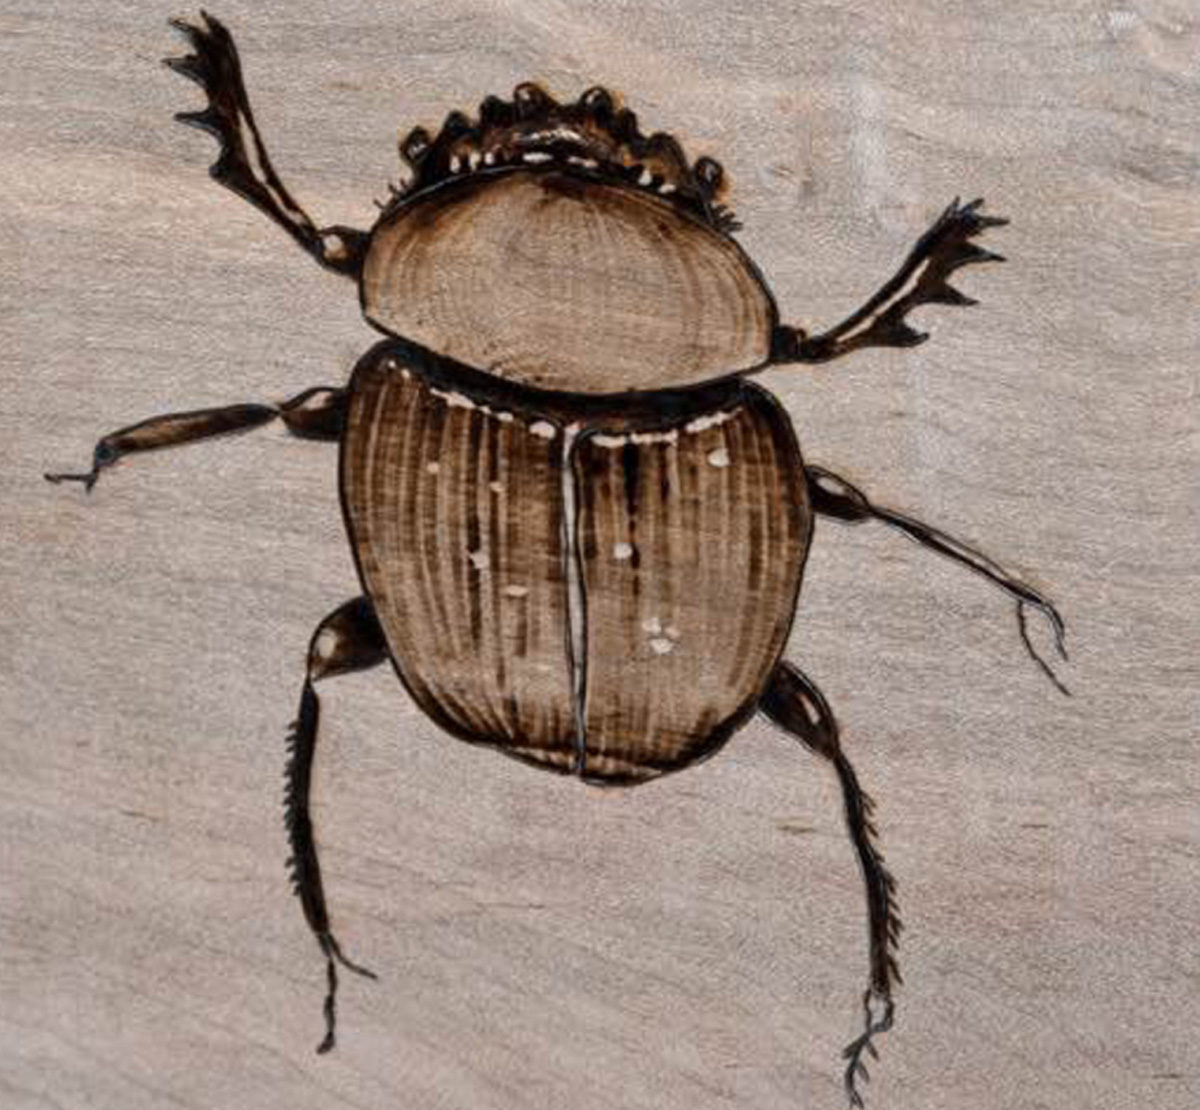 June Bug created by Ben Beddows